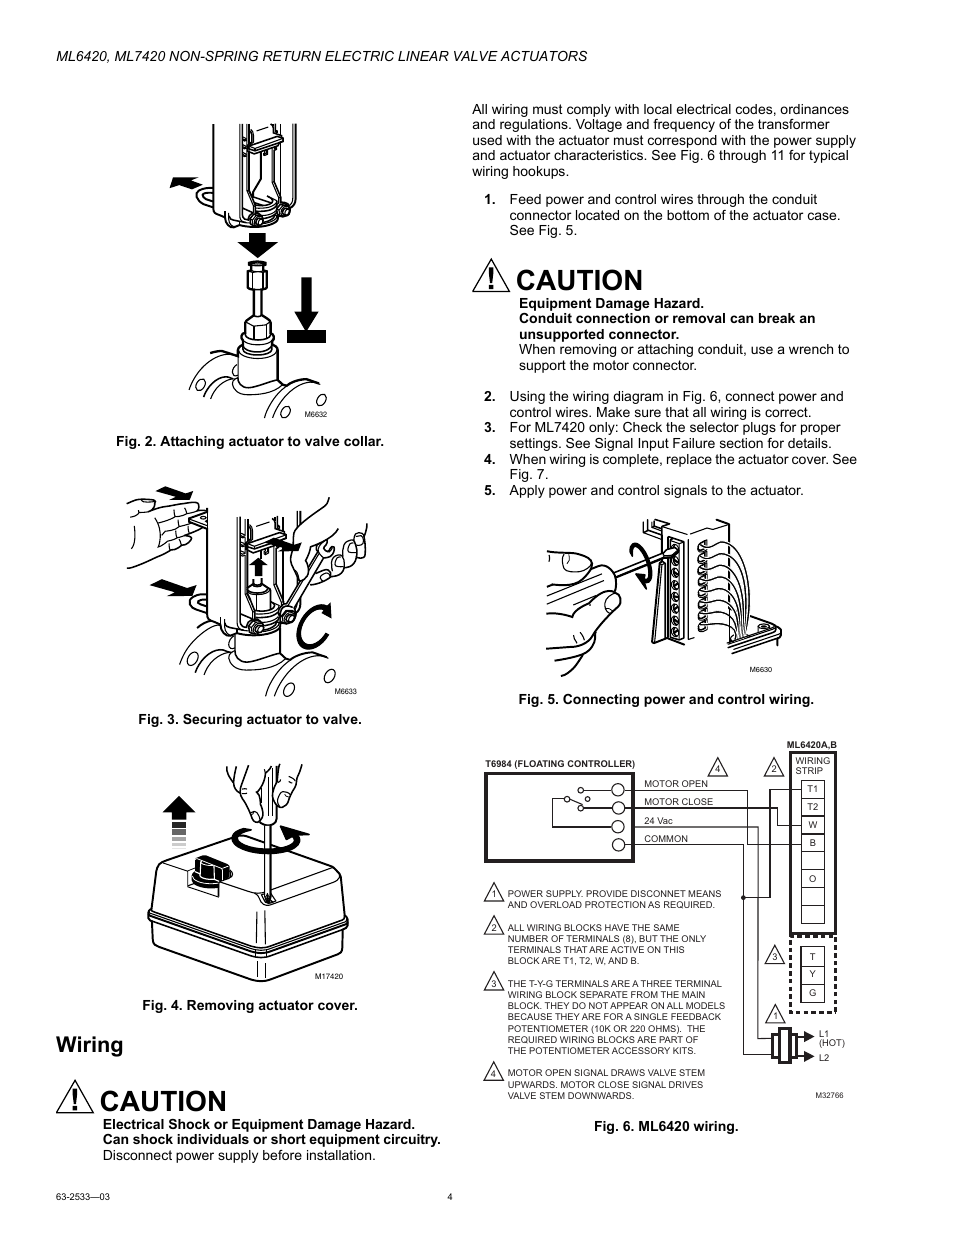 Honeywell Actuator Wiring Diagram Caution Ml6420 User Manual Page 4 8